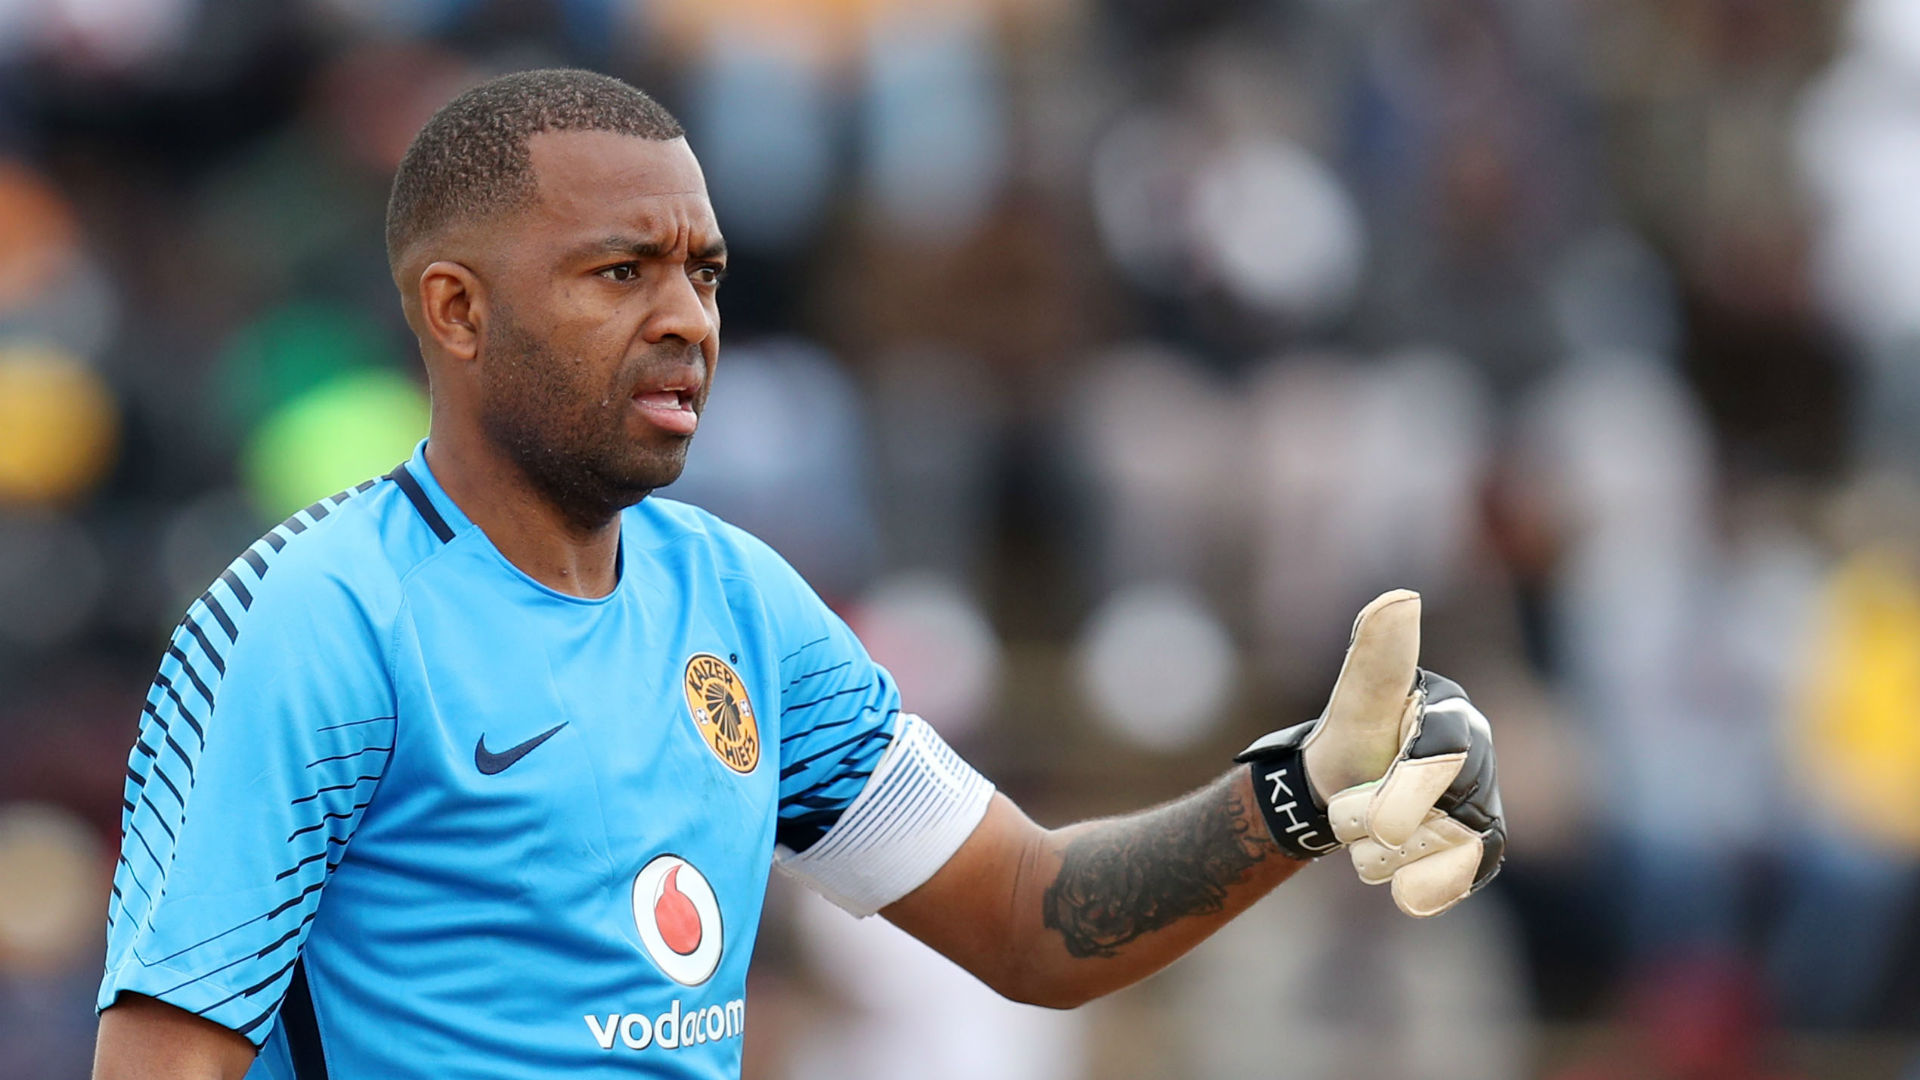 Kaizer Chiefs coach Middendorp needs Khune, should rest Akpeyi - Khanye